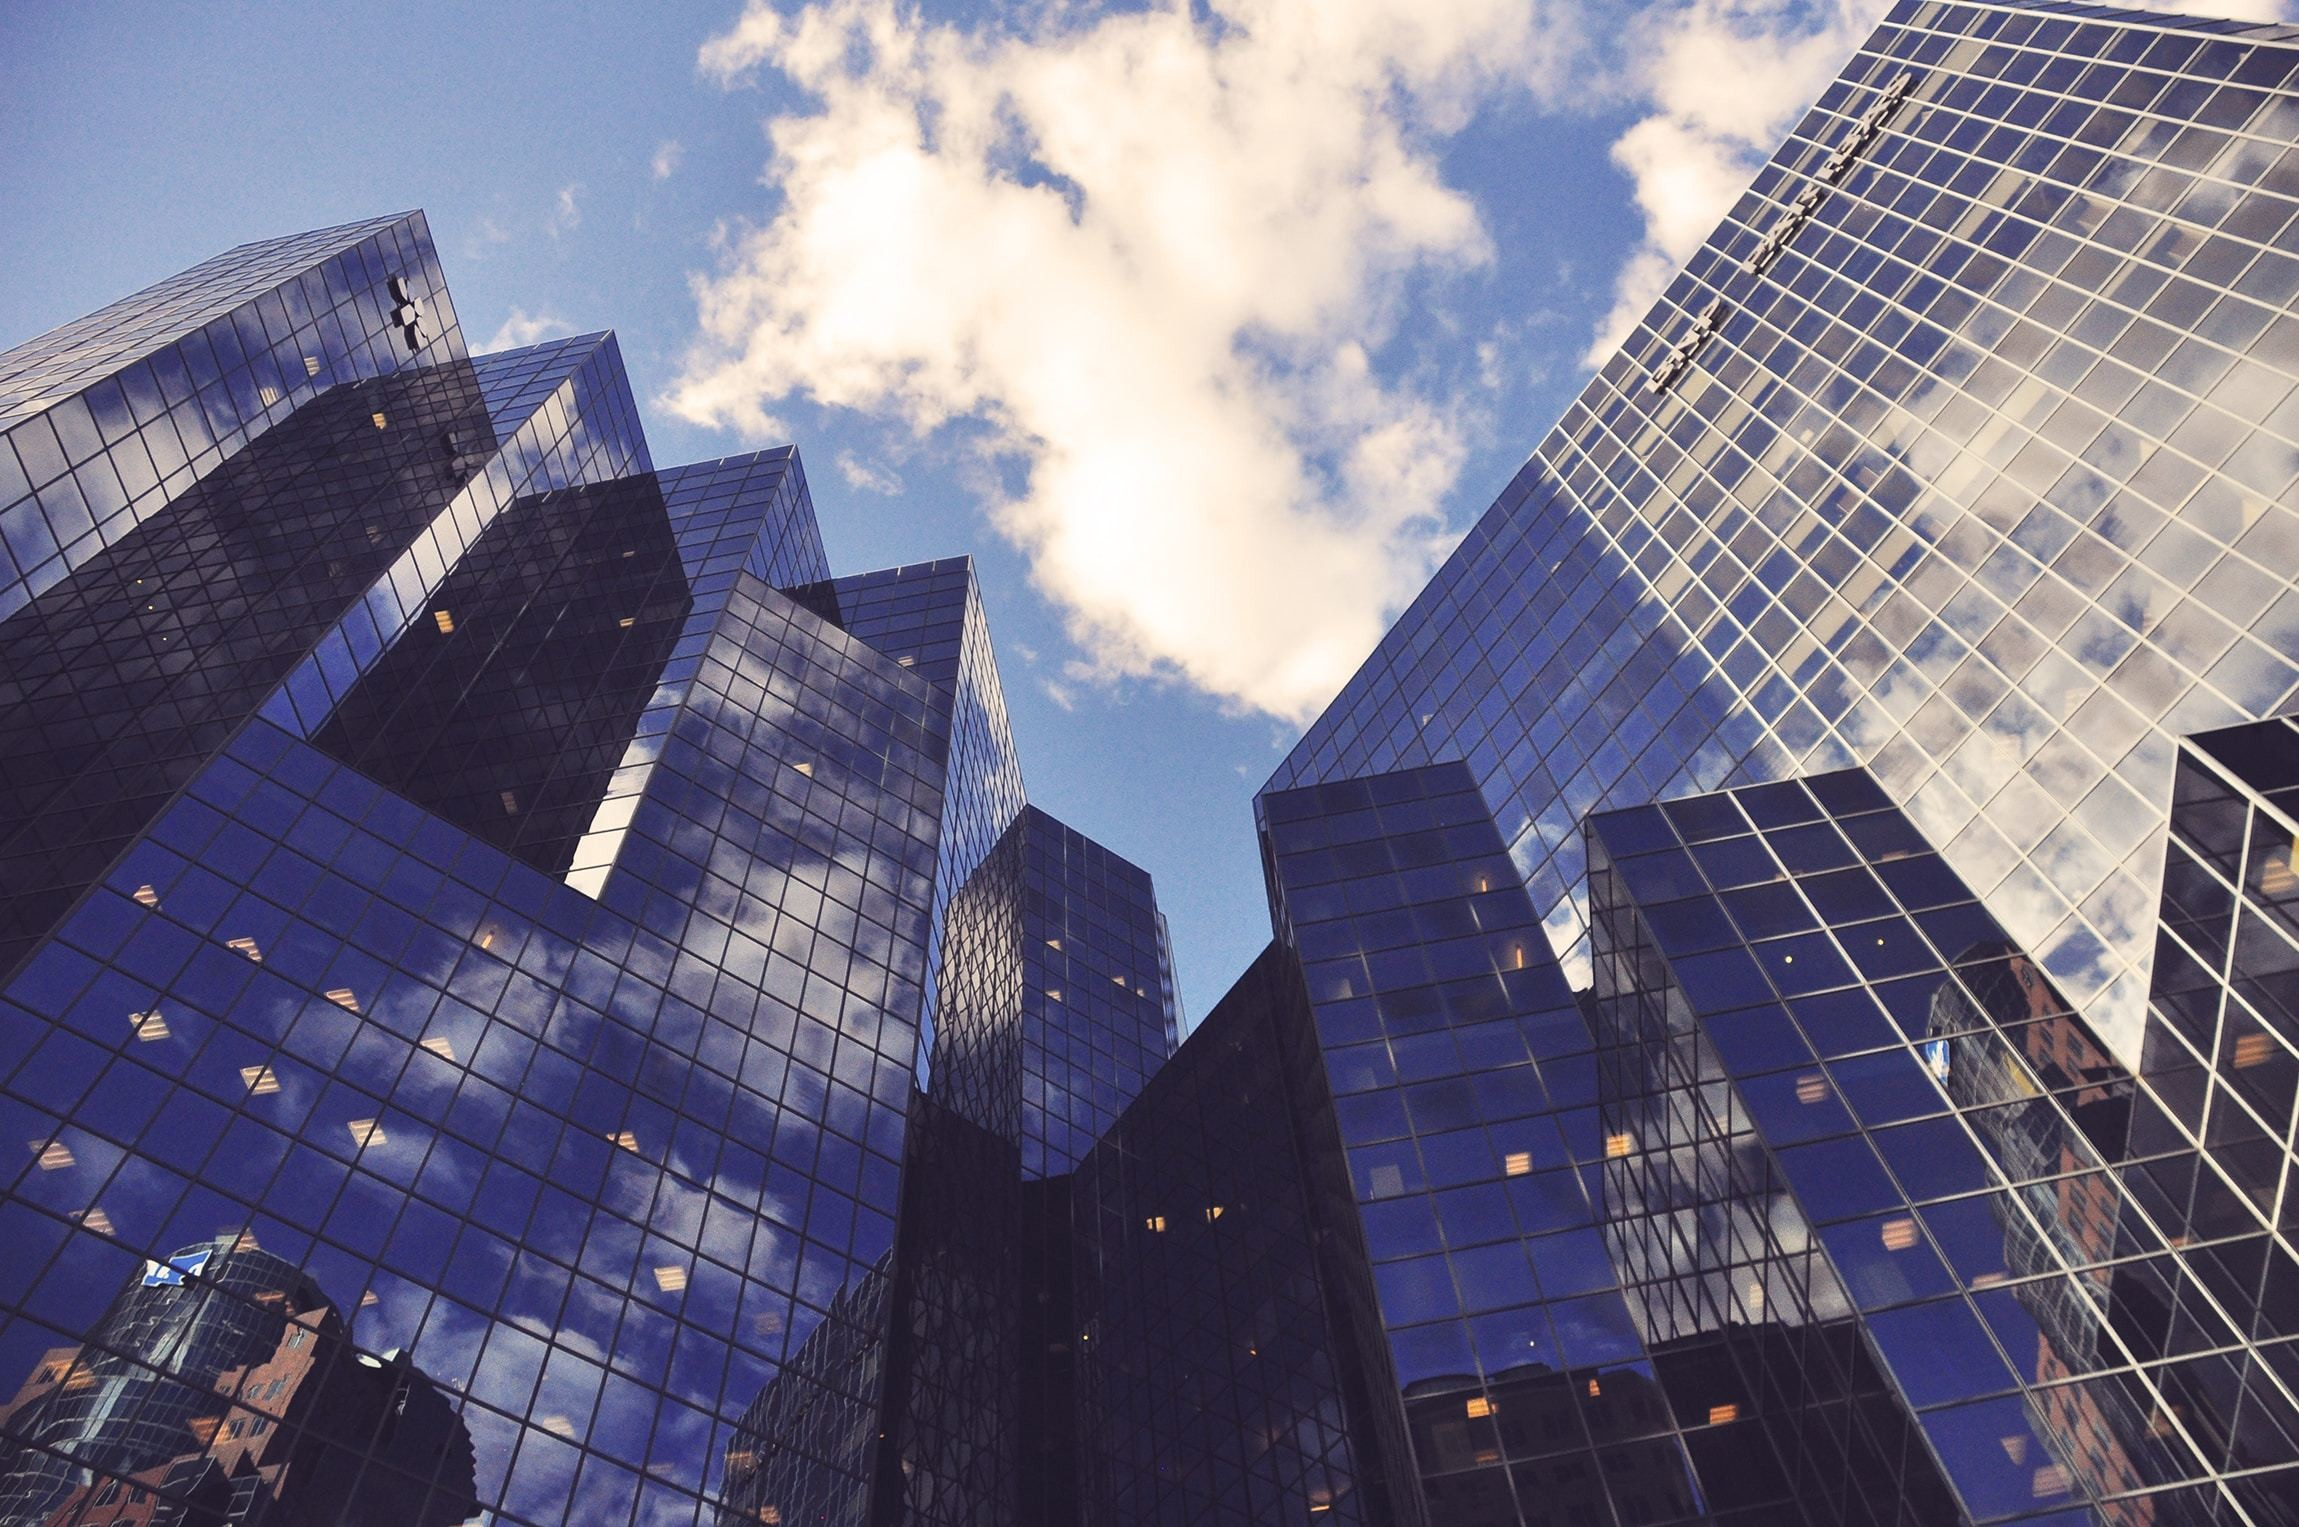 looking up from street level at the reflective windows of skyscrapers